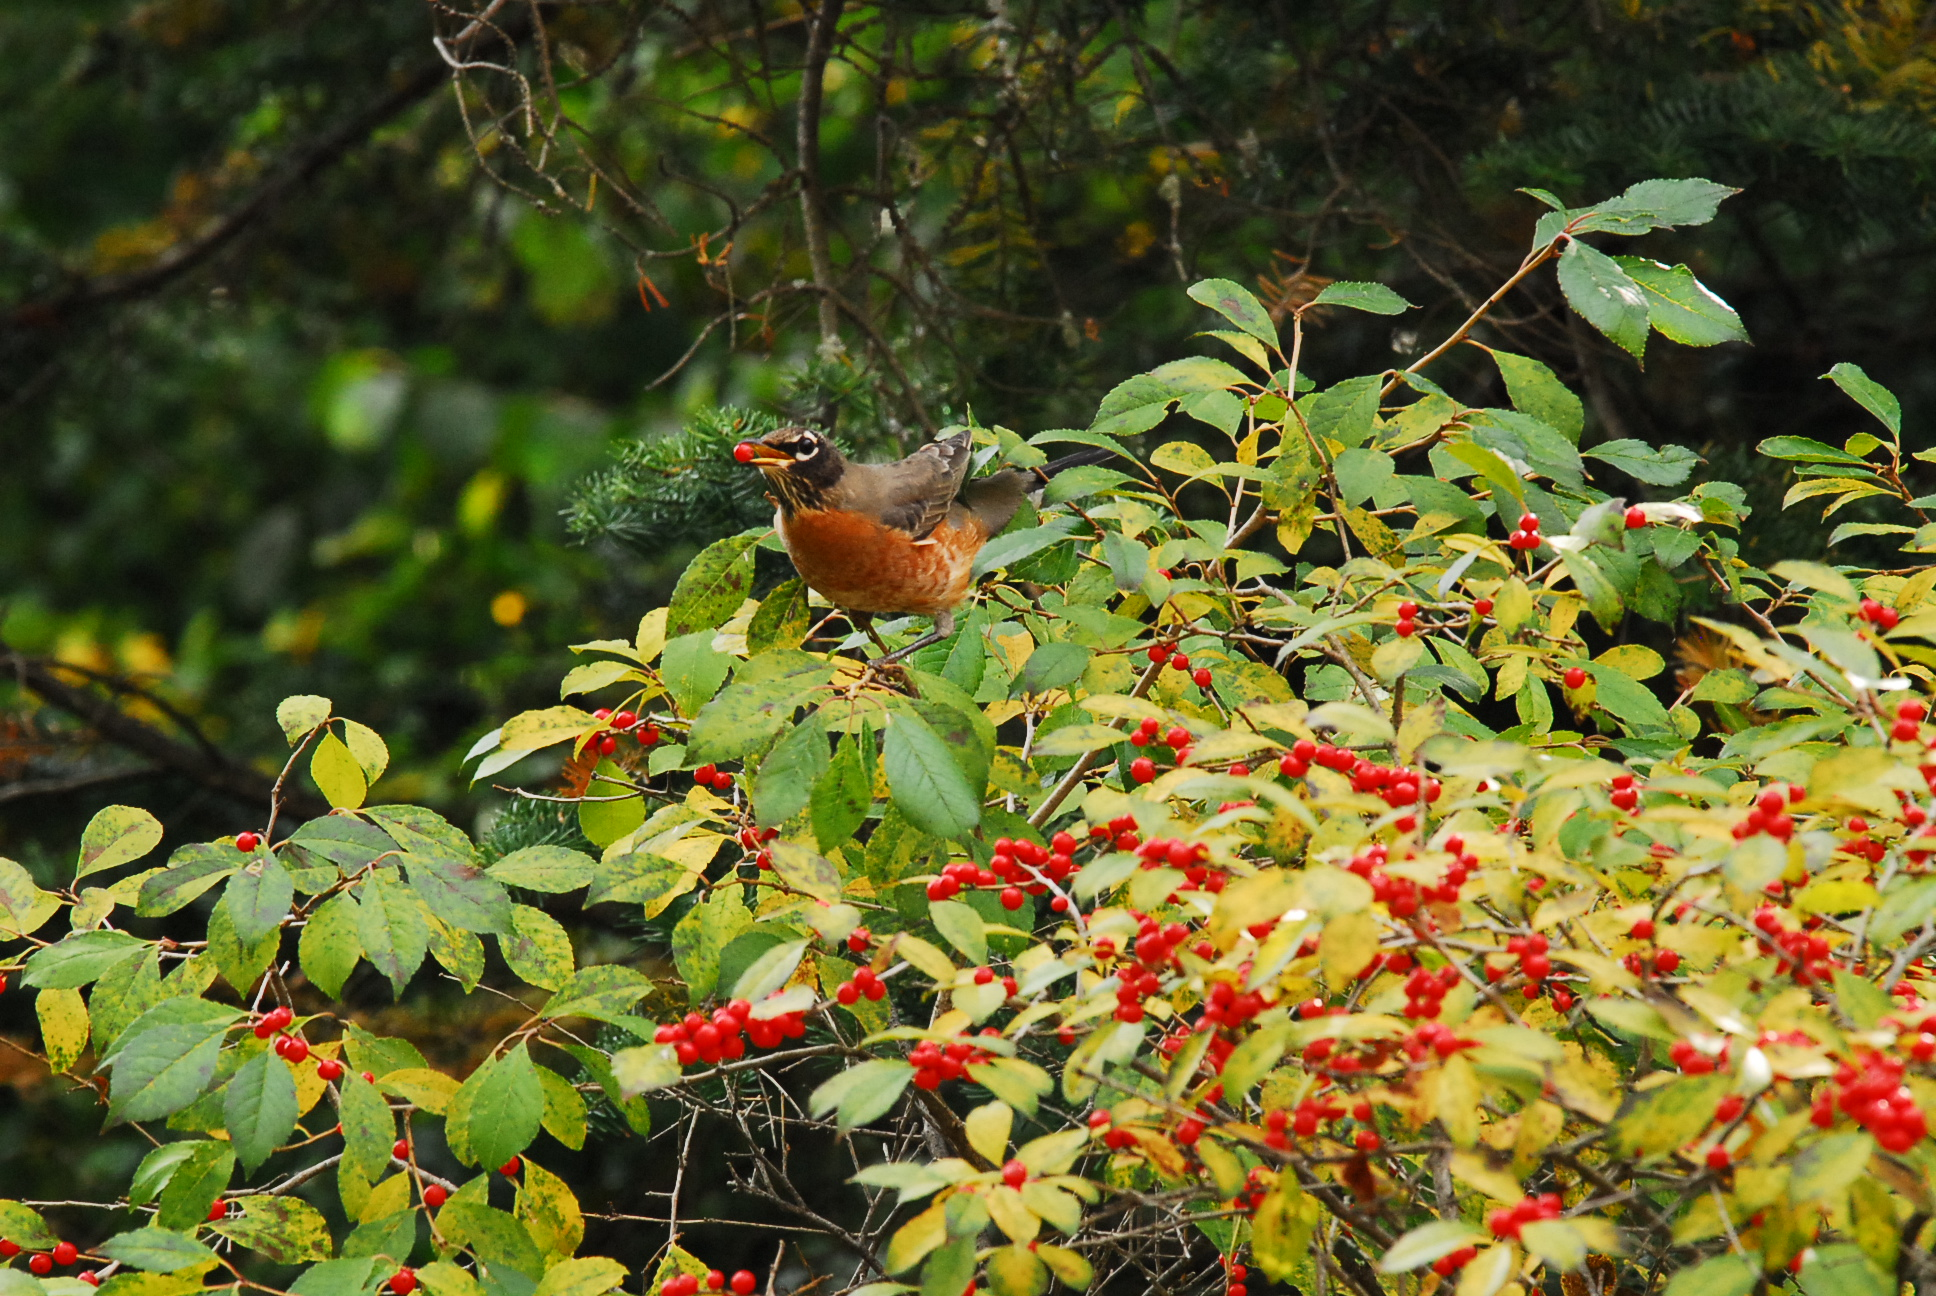 Robin enjoying a Canadian Holly berry